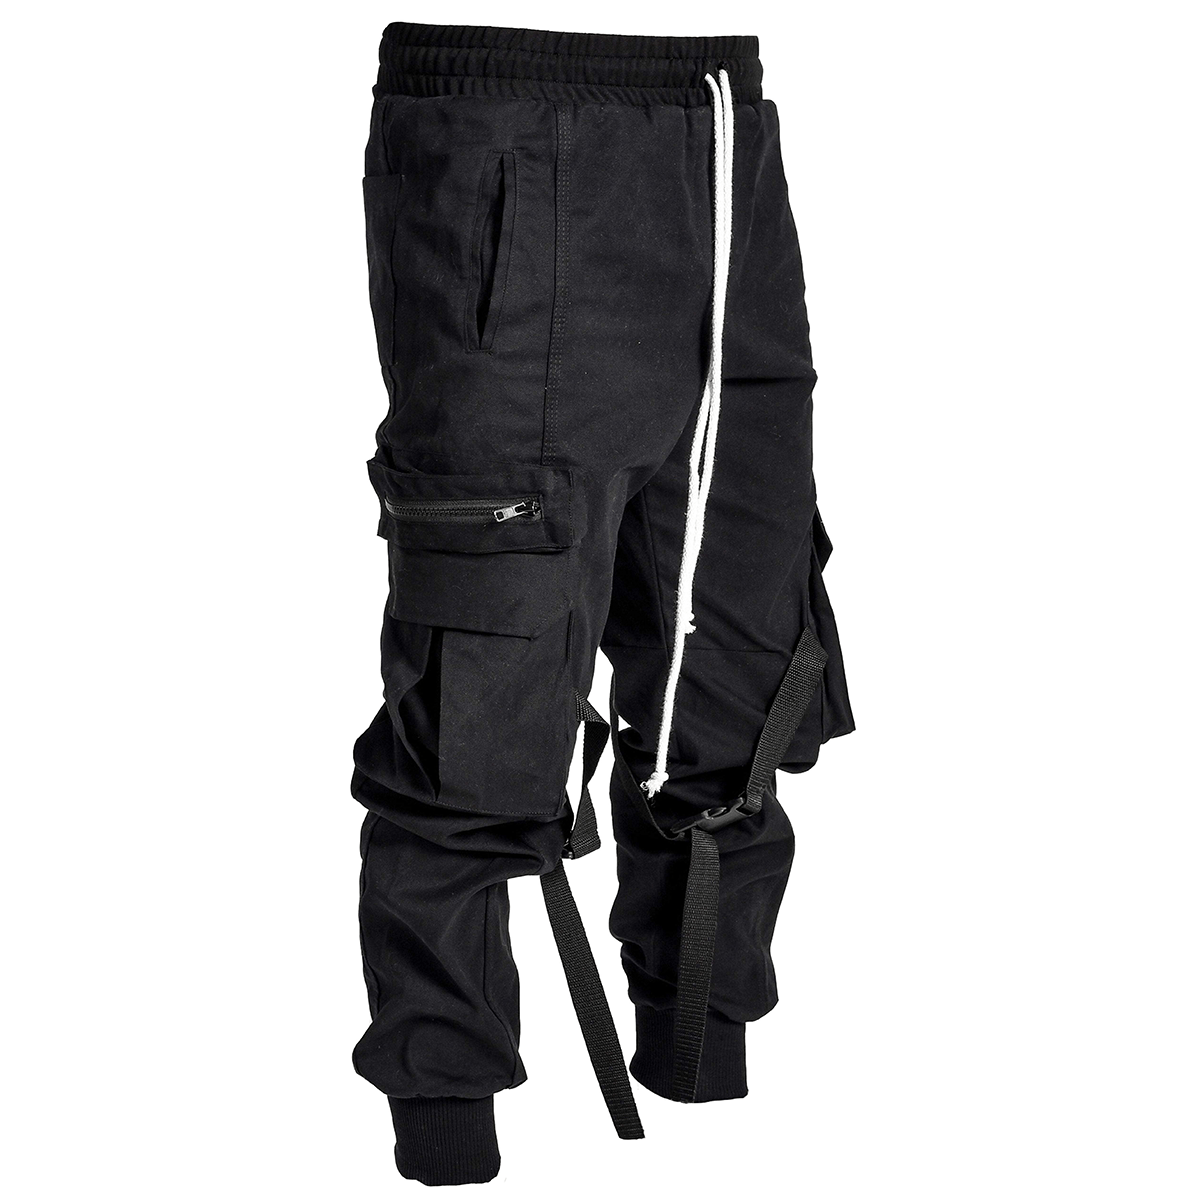 LAKENZIE CARGO PANTS - BLACK